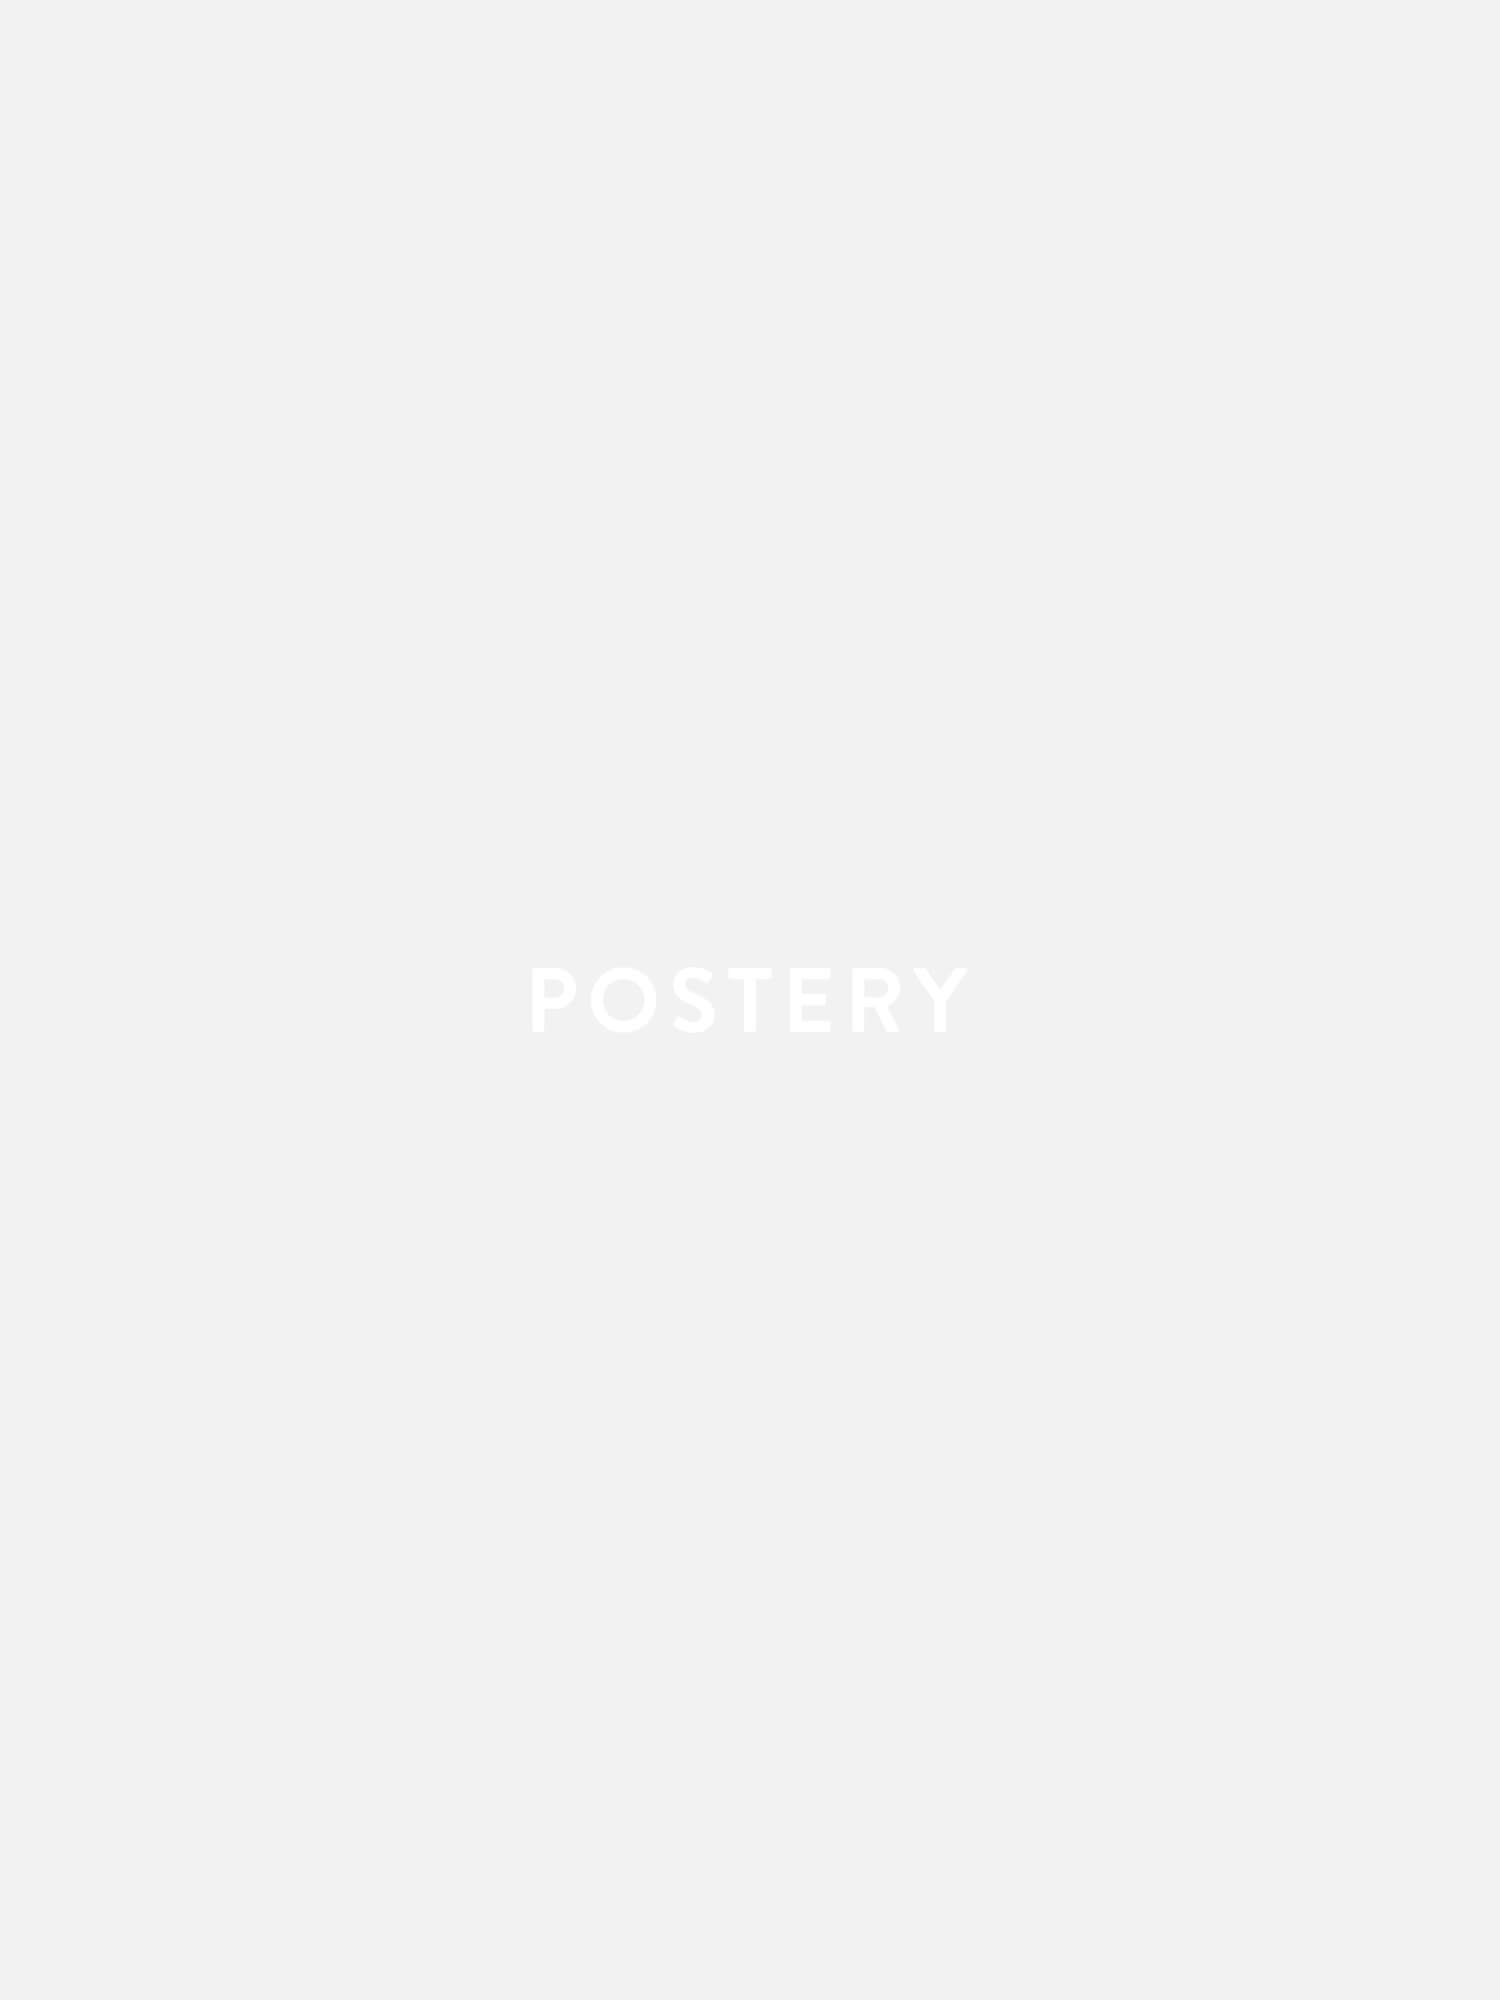 Sleeping Bear no.2 Poster